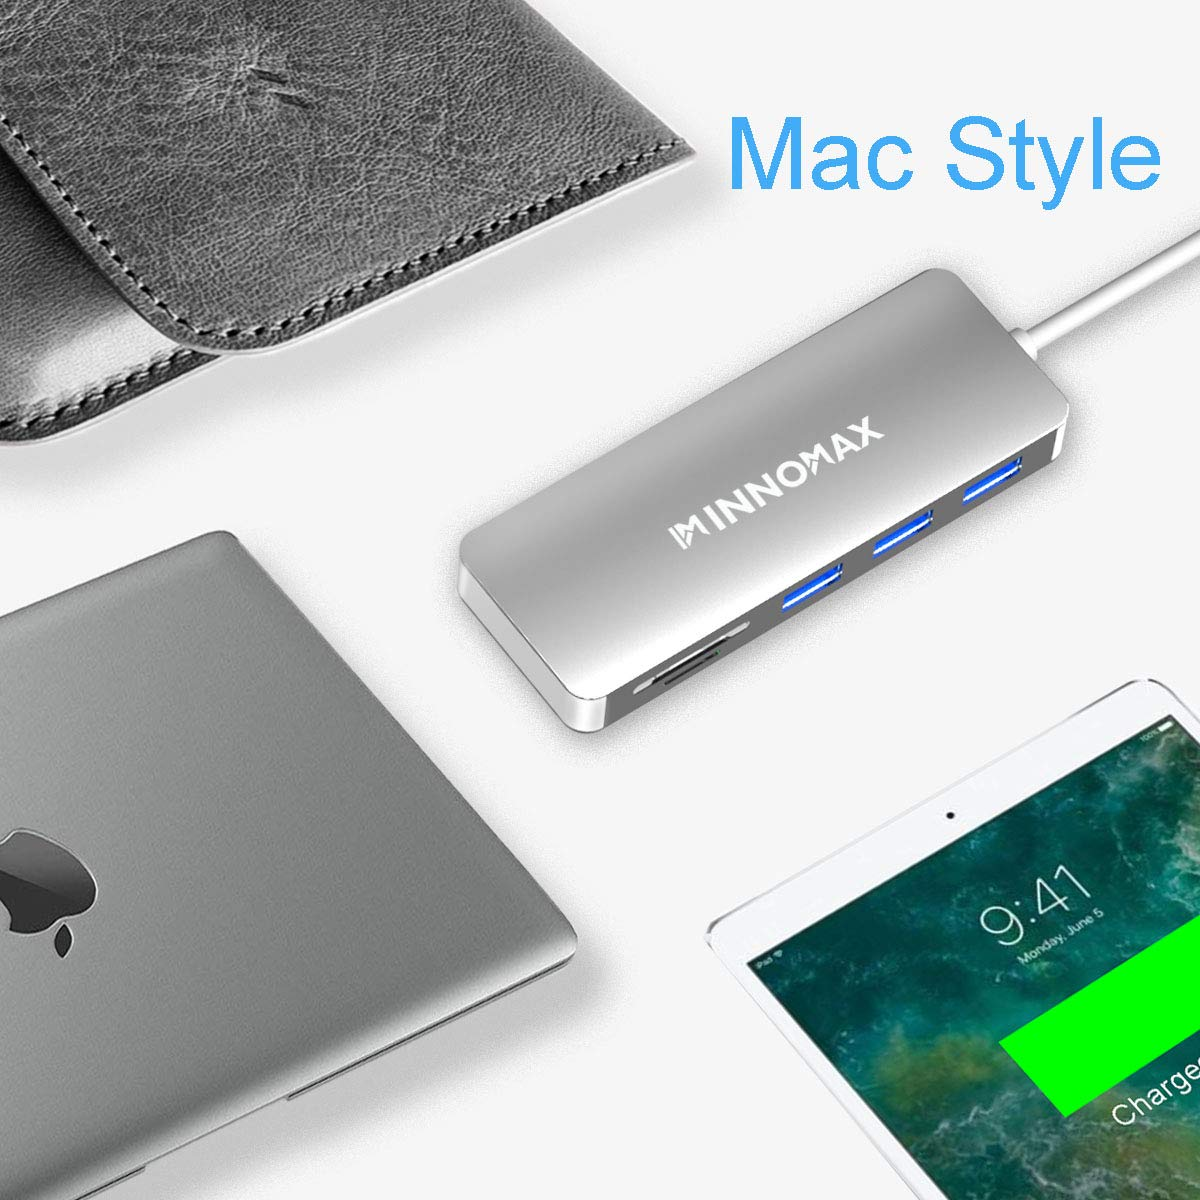 MacBook Pro USB C Adapter,Macbook Pro USB C Hub, INNOMAX MacBook USB Type C Hub(Silver) with Mini SD Card Reader, SD Card Reader, 3 USB 3.0 Ports for 2016, 2017 MacBook PRO,Chromebook Pixel, and more